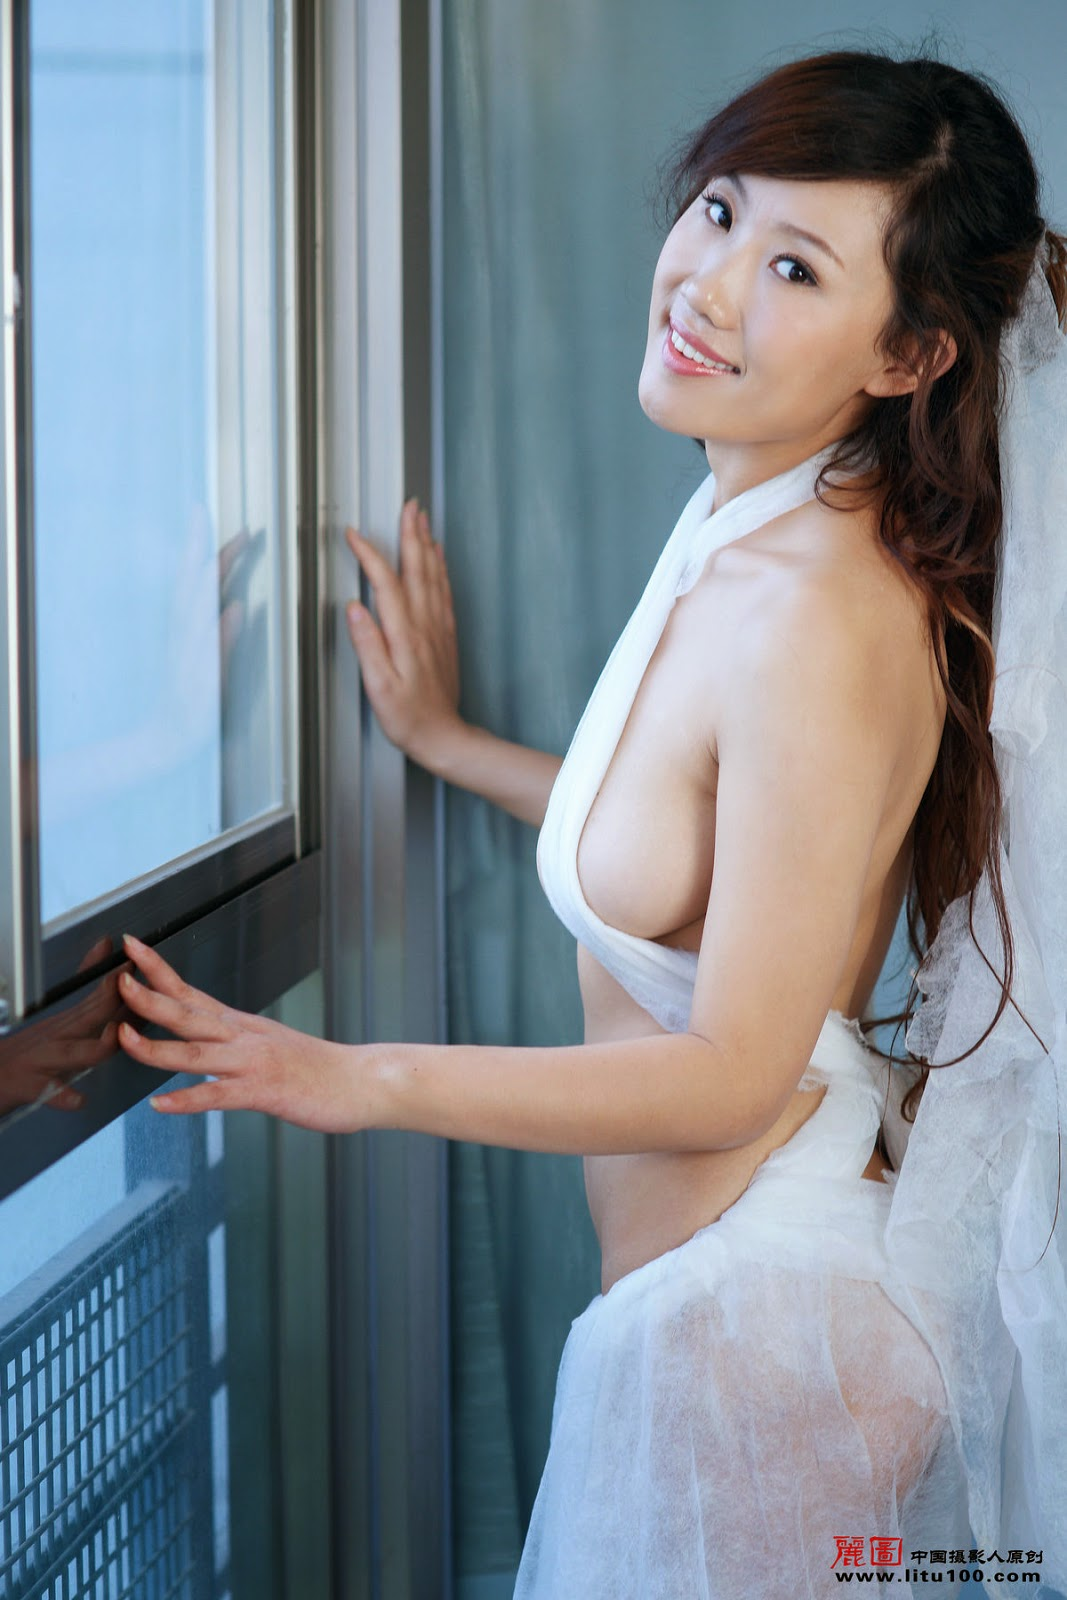 Naked Wedding Photos As Memento New Fad In China